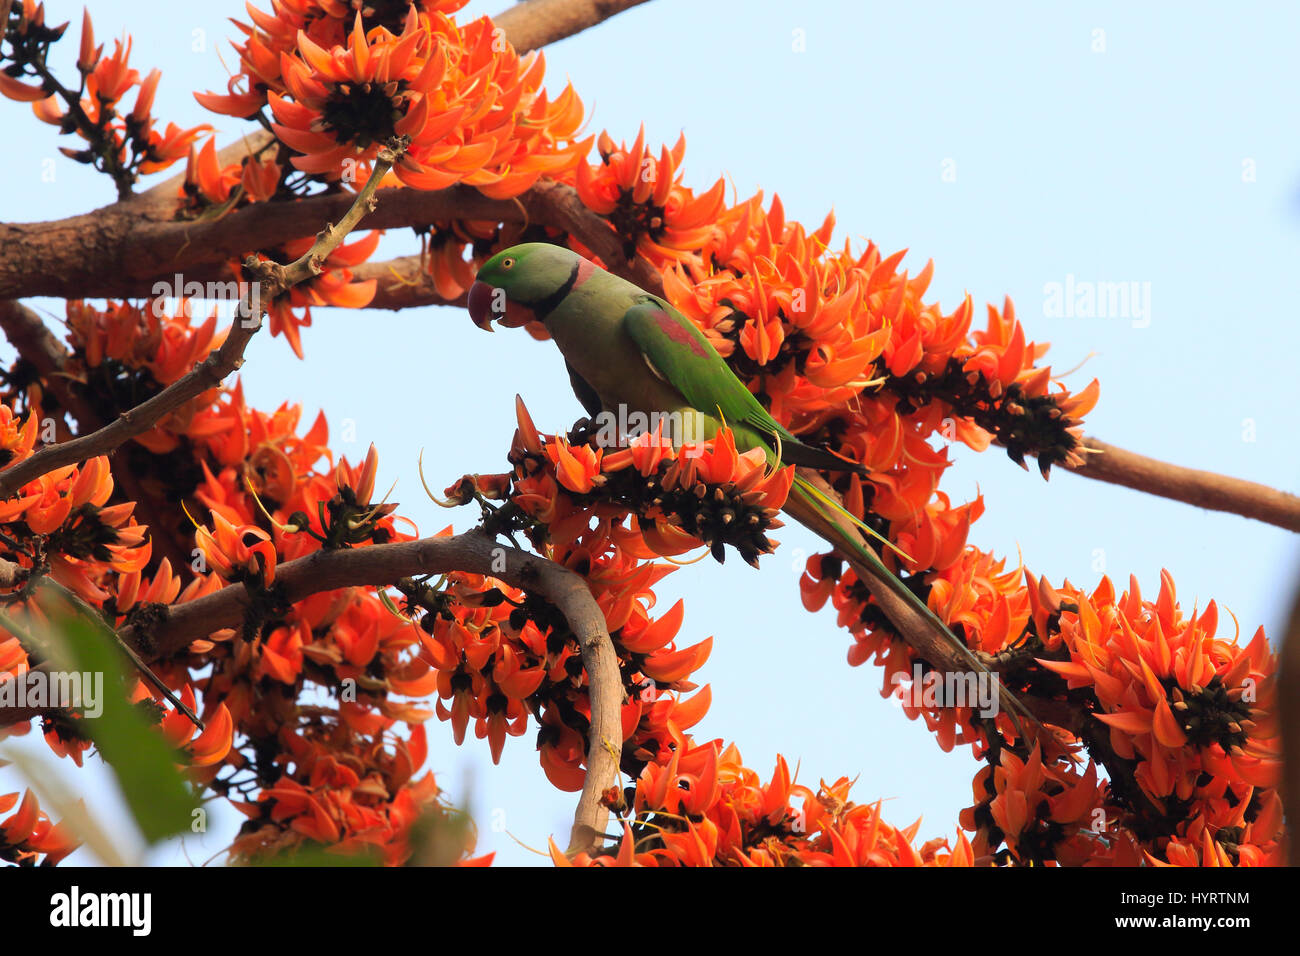 An Alexandrine Parakeet Perching On The Branch Of Spring Flower